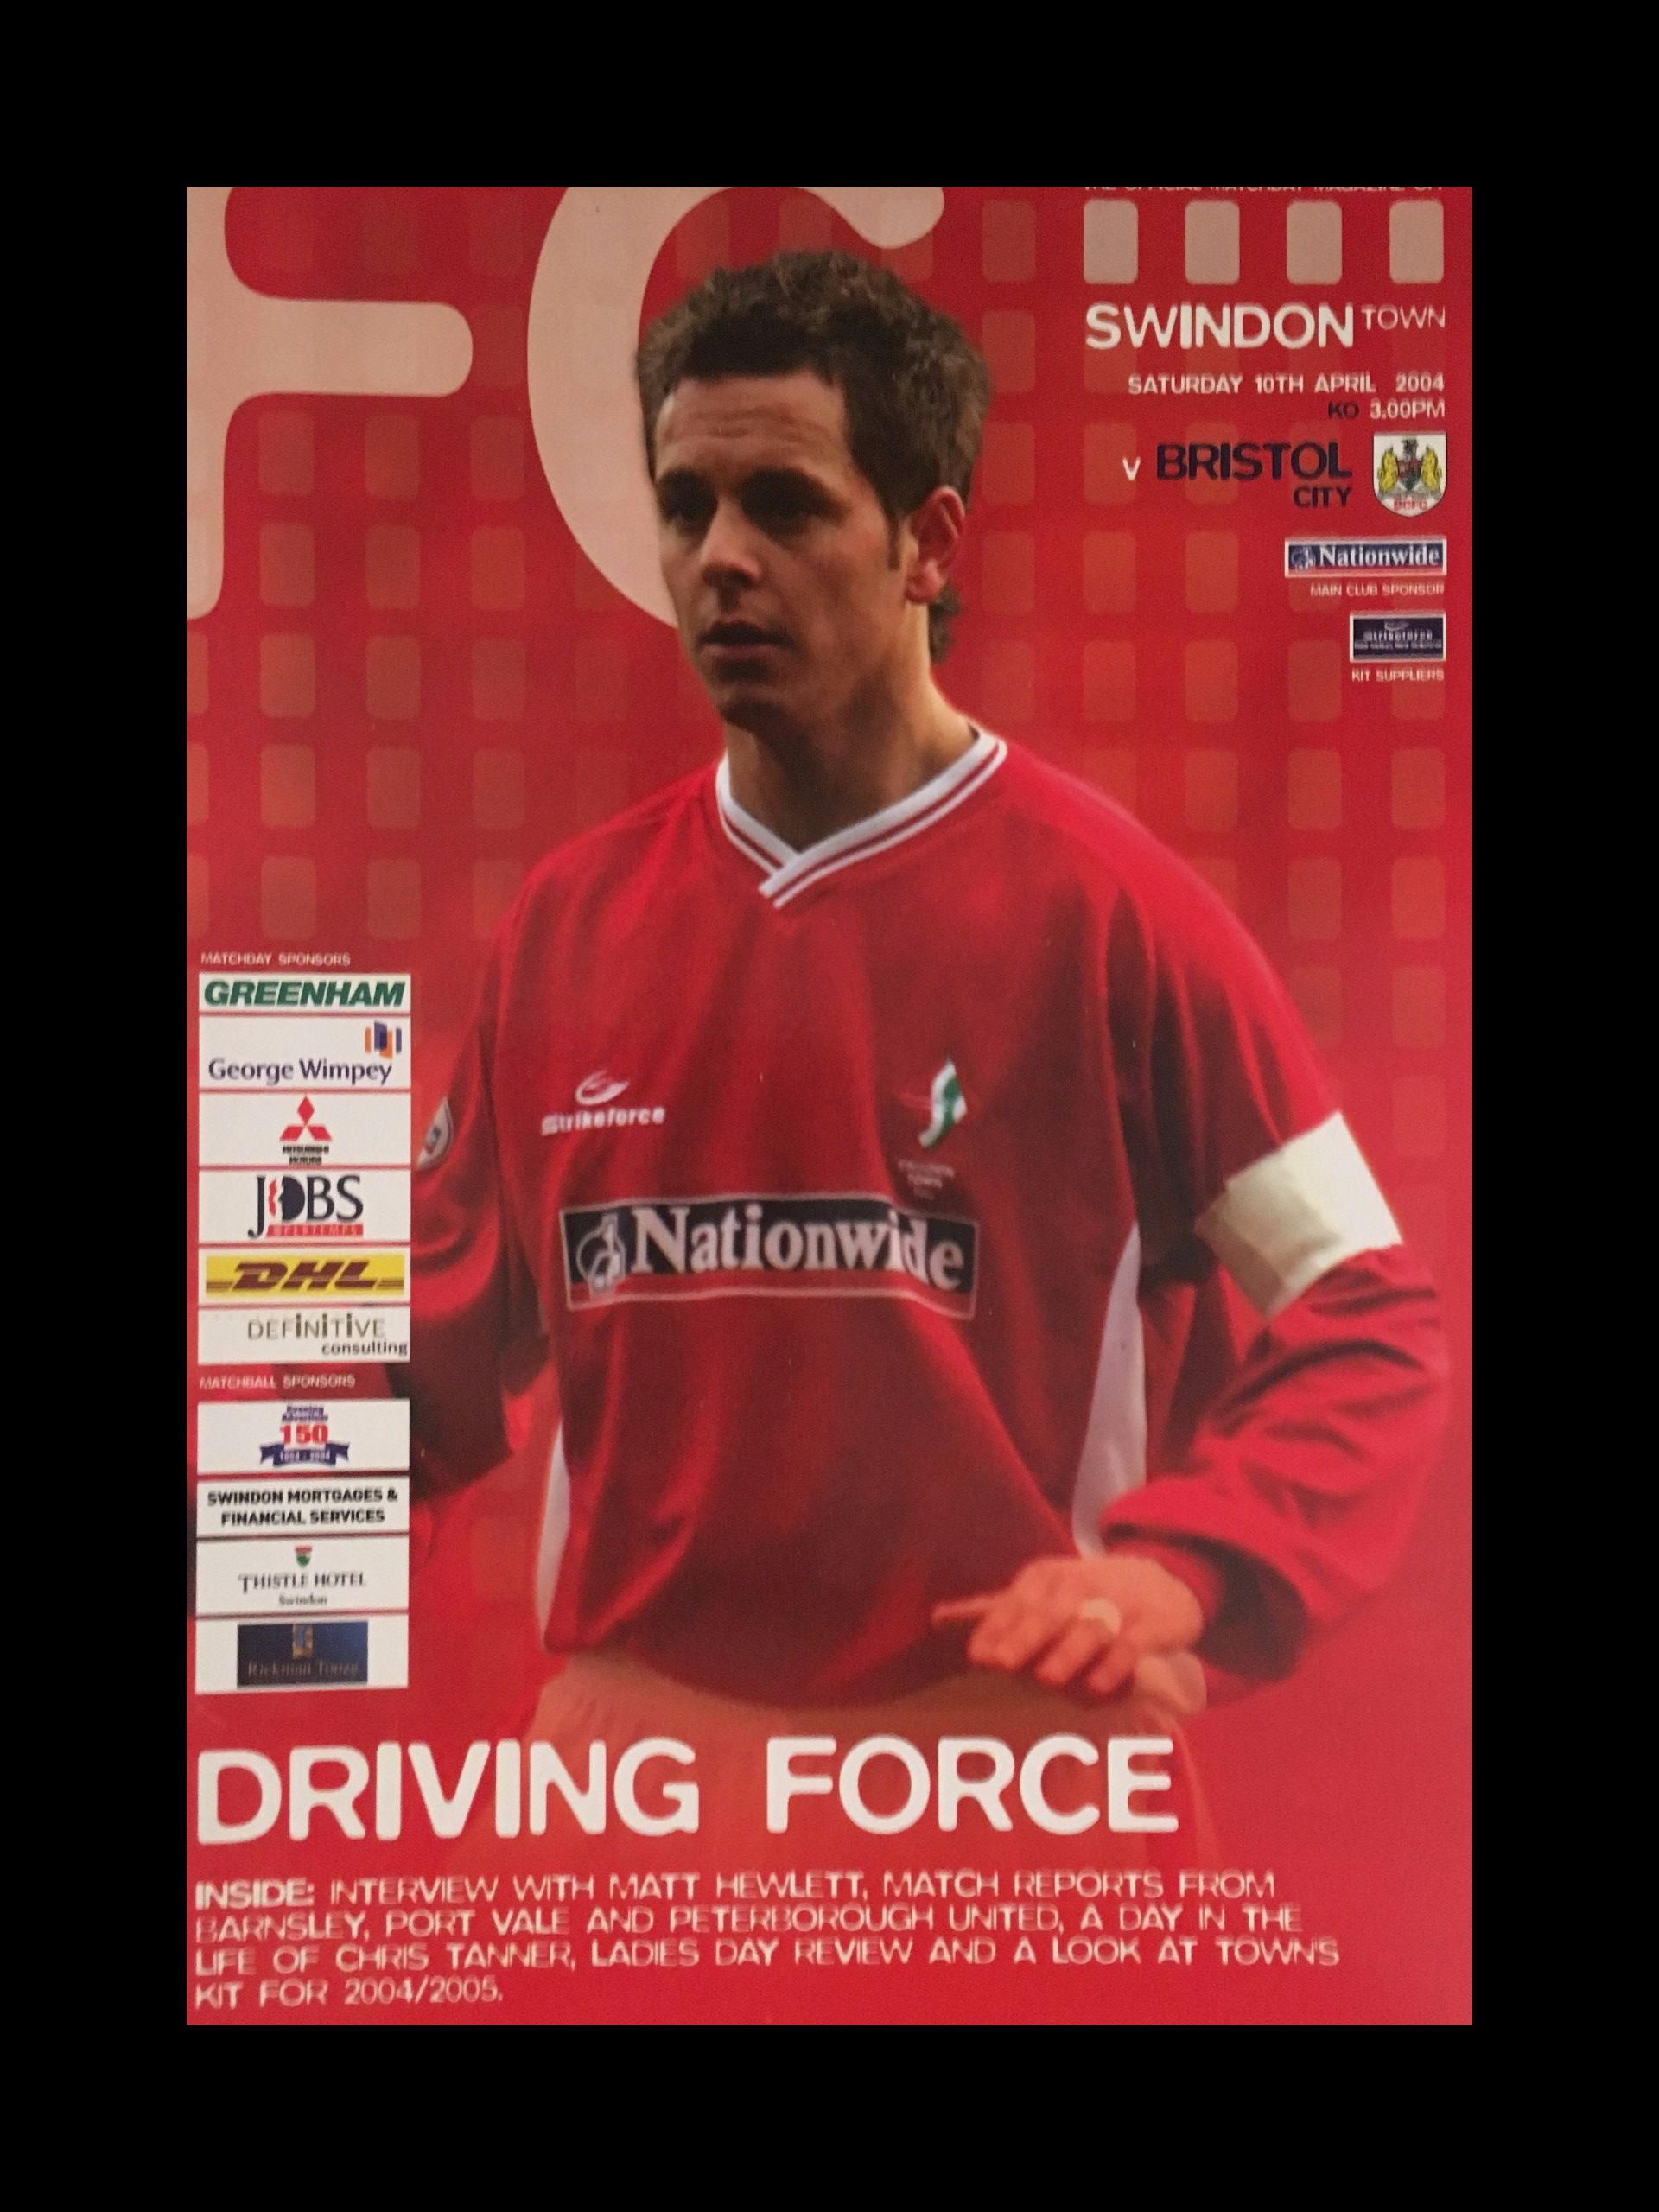 Swindon Town v Bristol City 10-04-2004 Programme